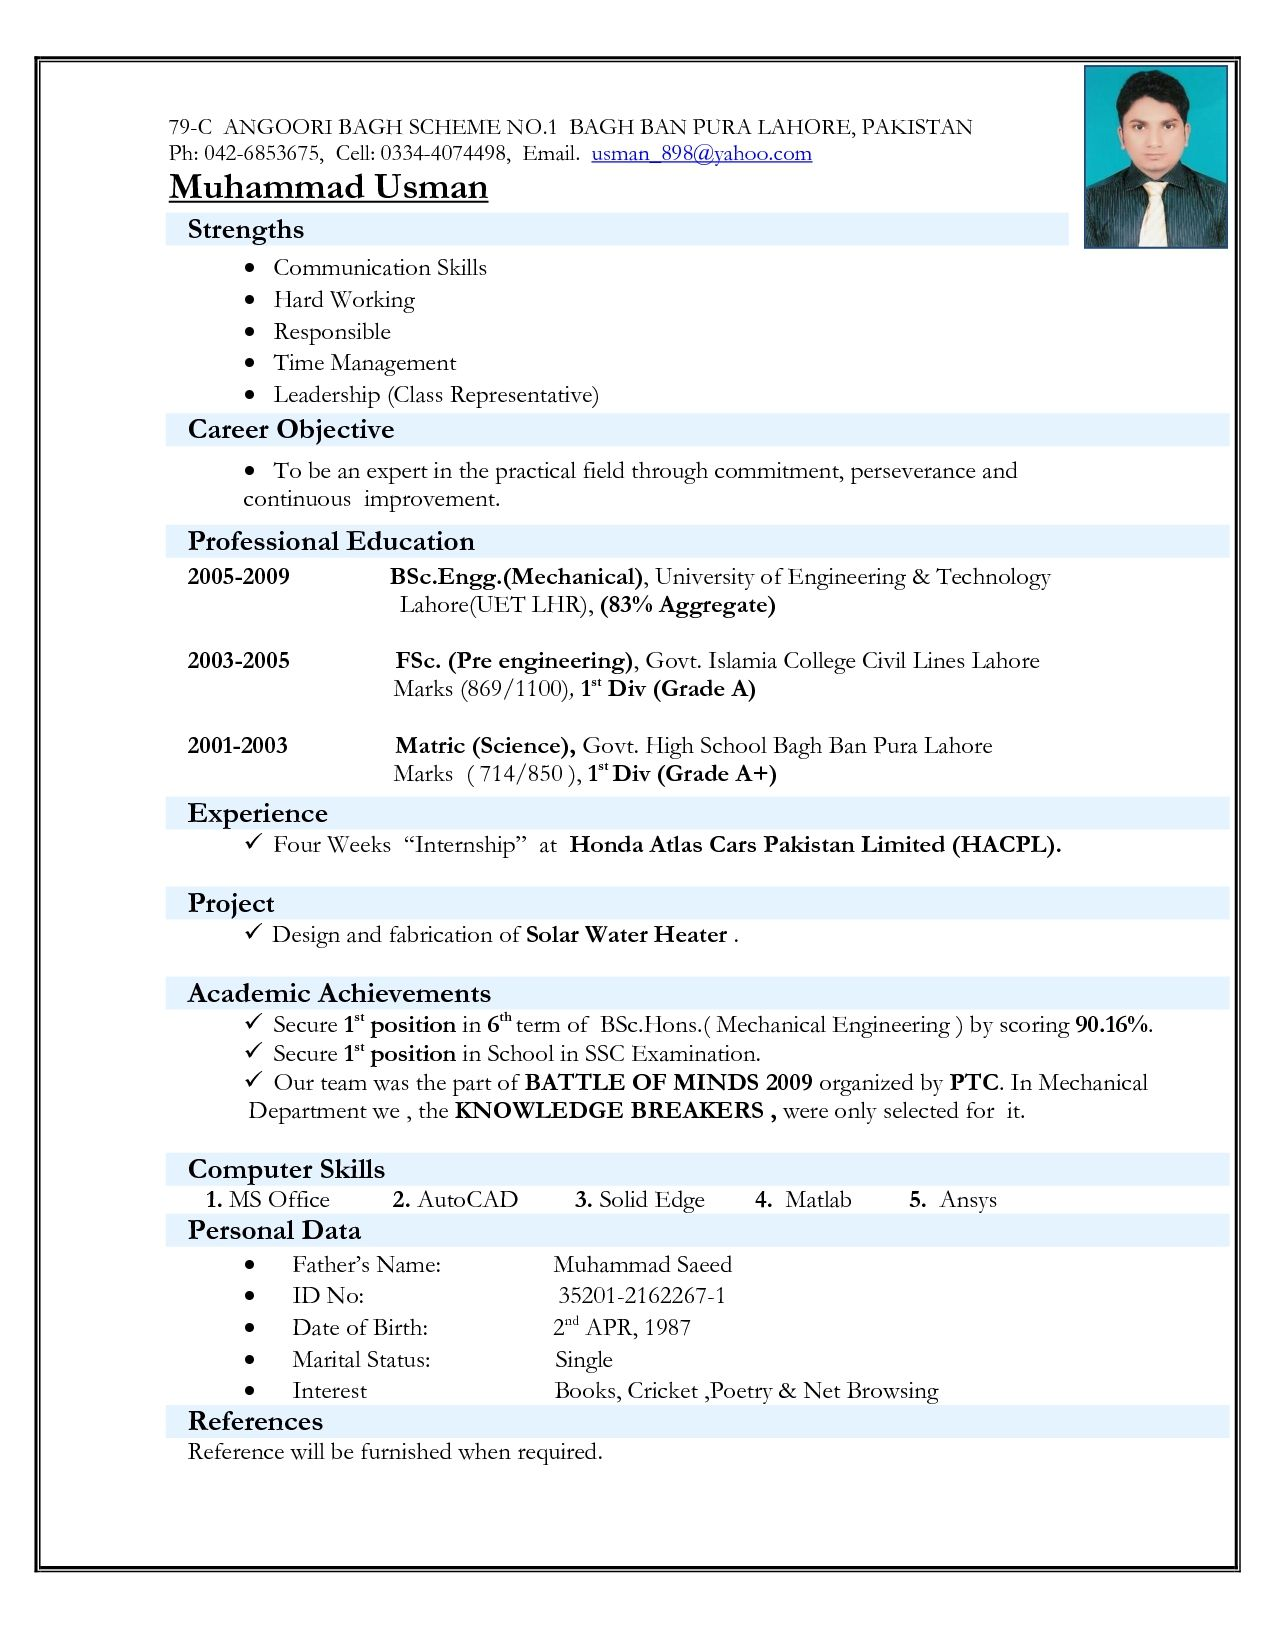 Indian Resume Format For Freshers Engineers Resume Format For Mechanical Engineering Freshers It